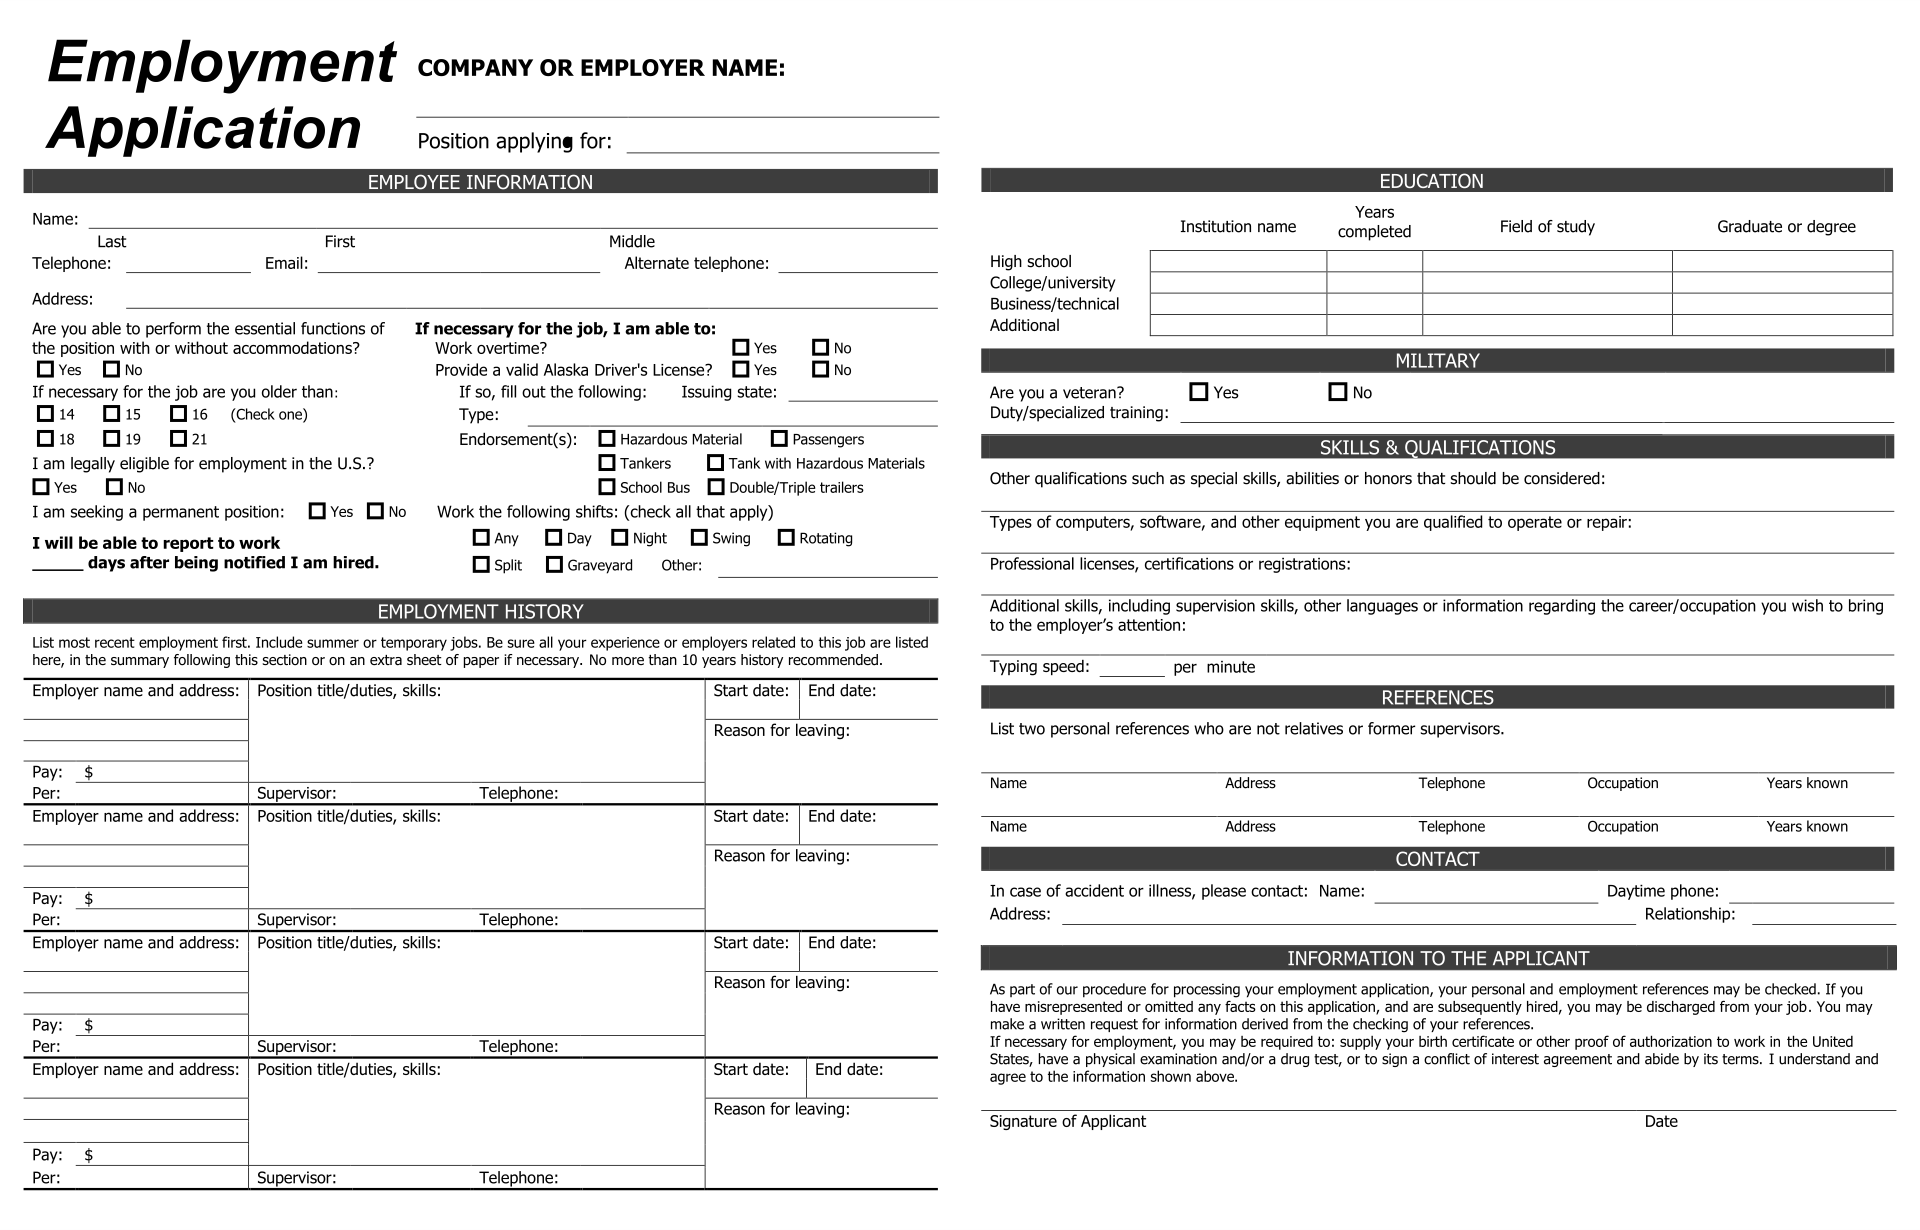 printable job applications forms able resume printable job applications forms printable job application forms search apply online job application form